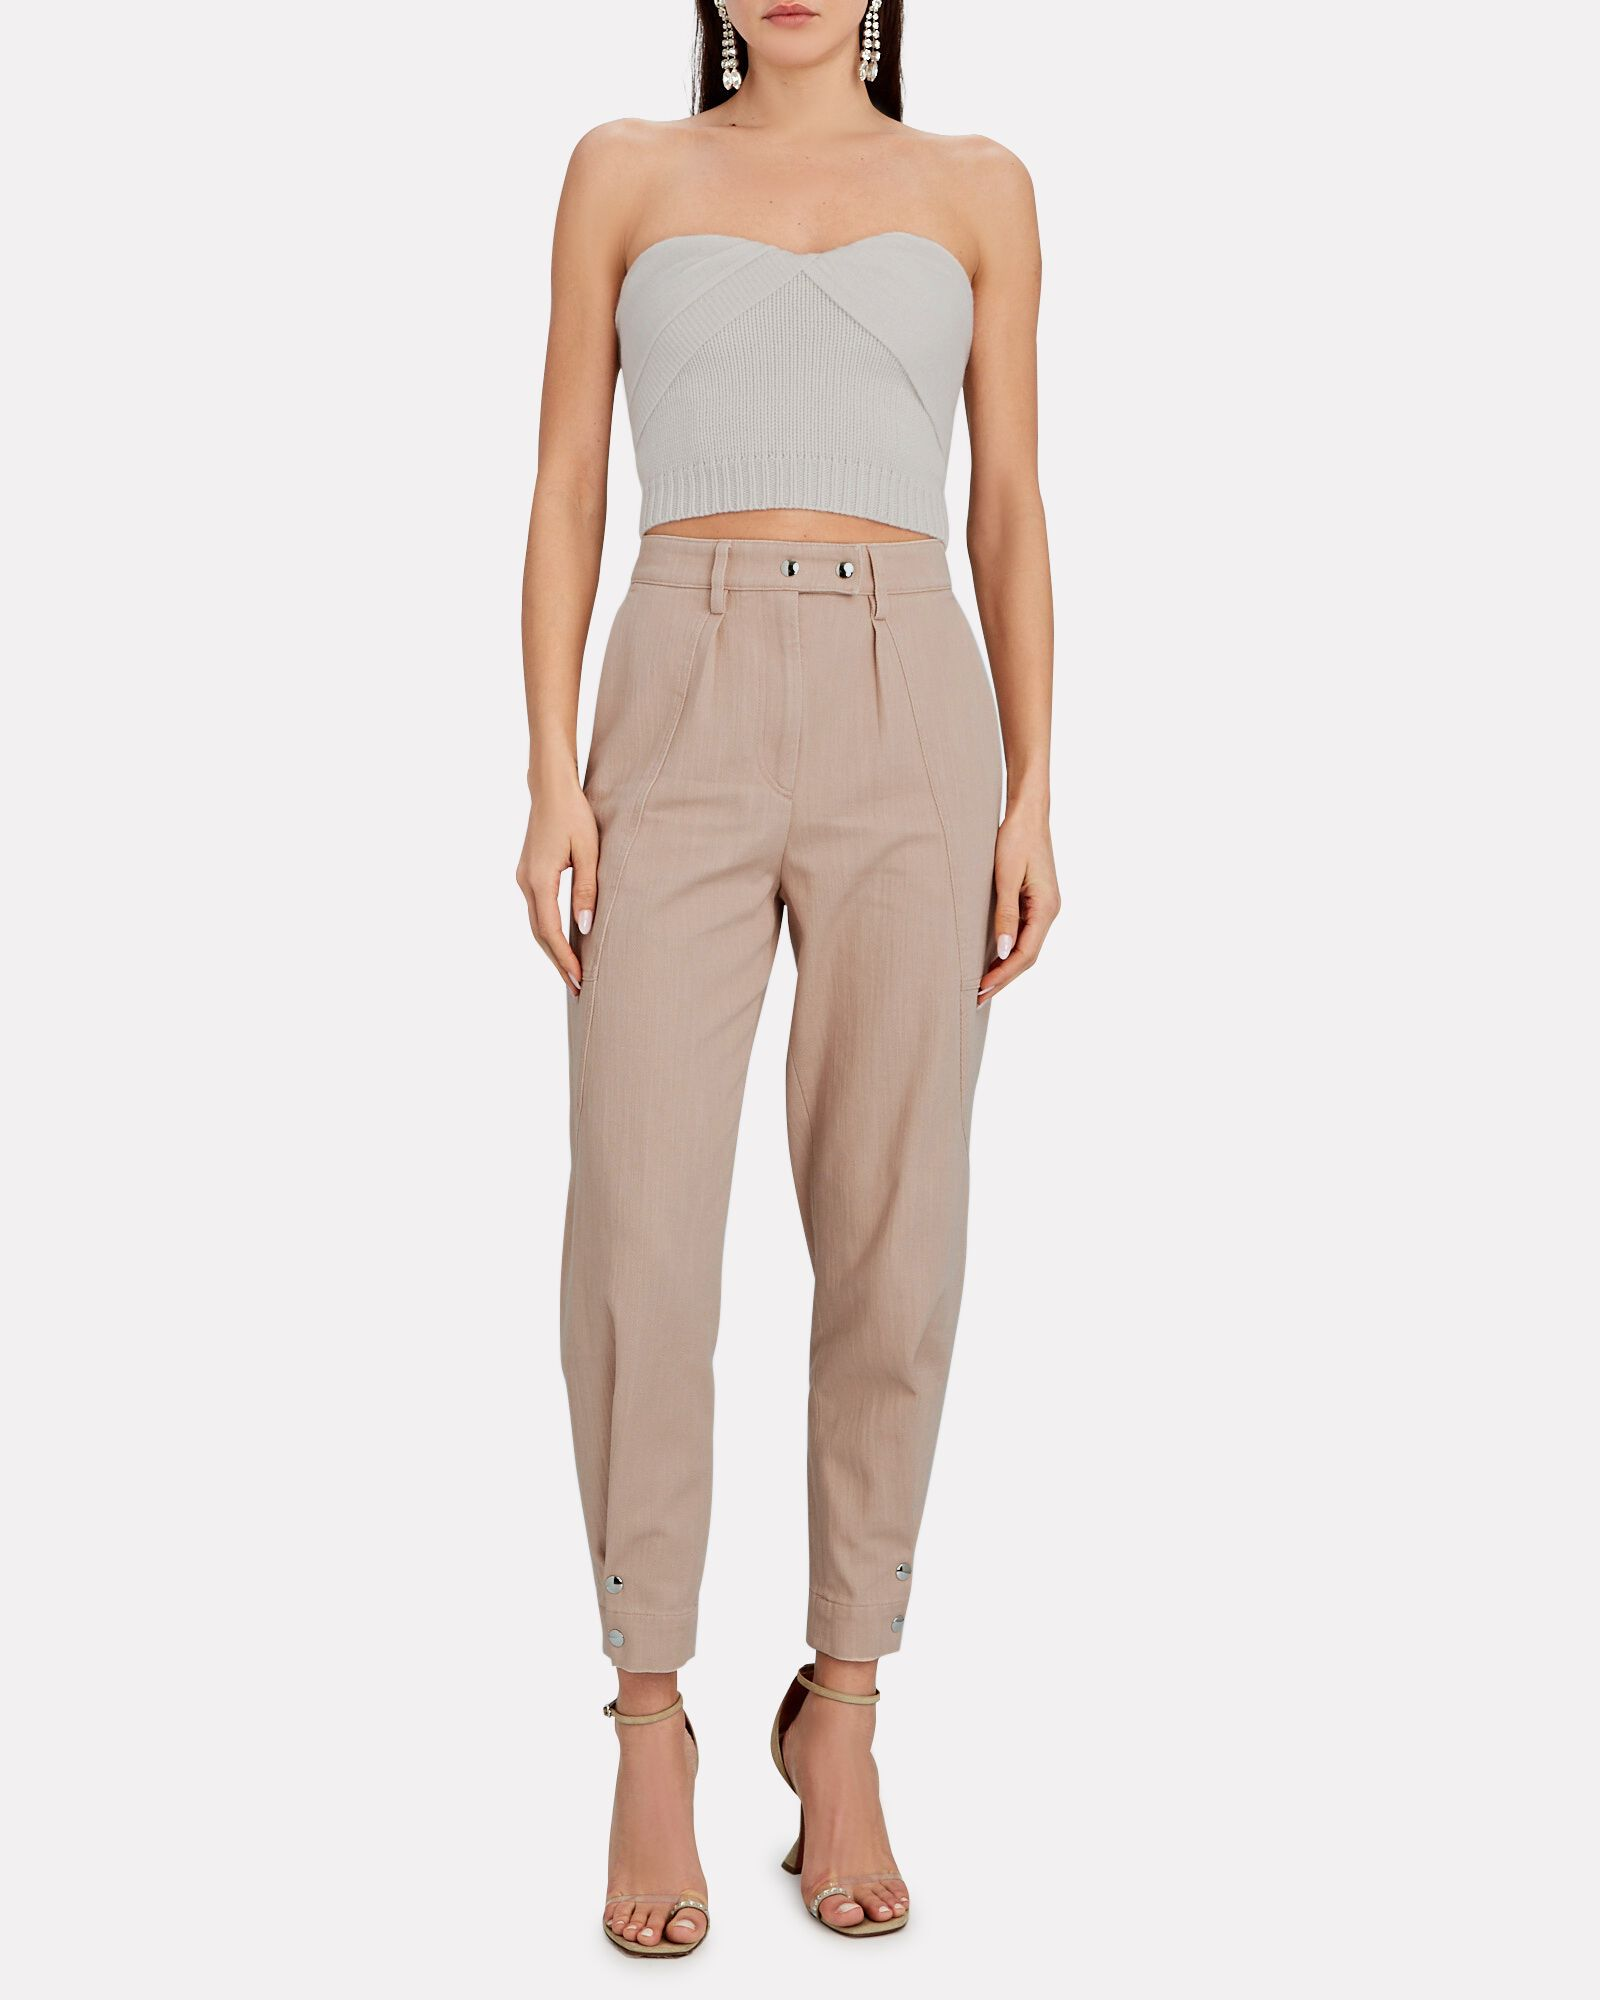 Viklay High-Rise Cotton Trousers, PALE PINK, hi-res